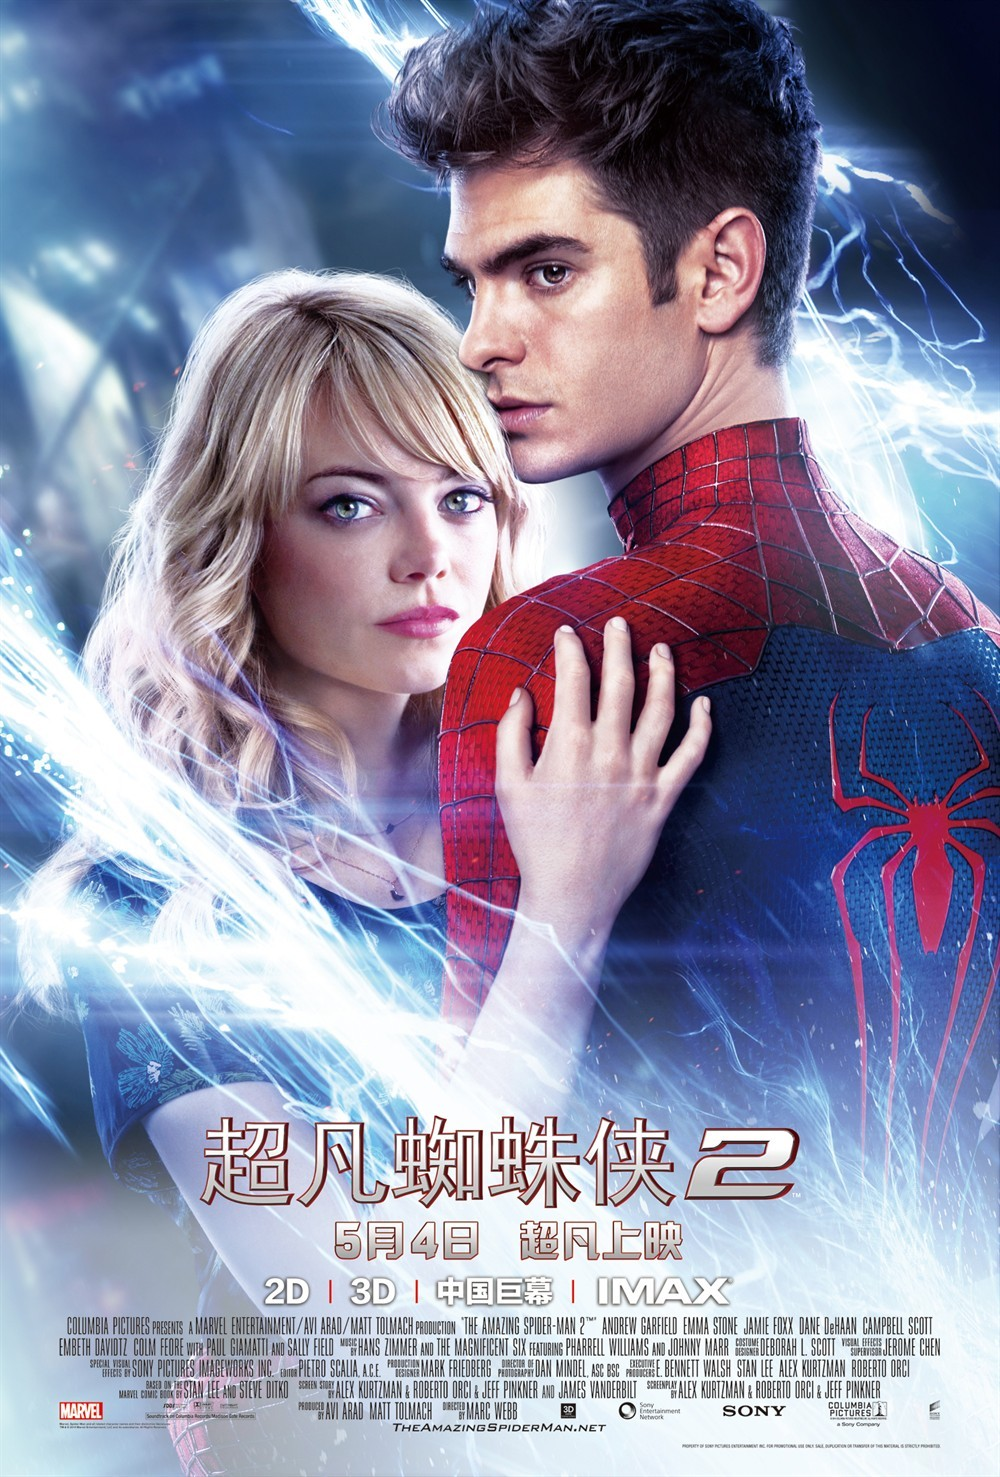 The Amazing Spider-Man 2-Official Poster Banner PROMO XLG-19MARCO2014-02